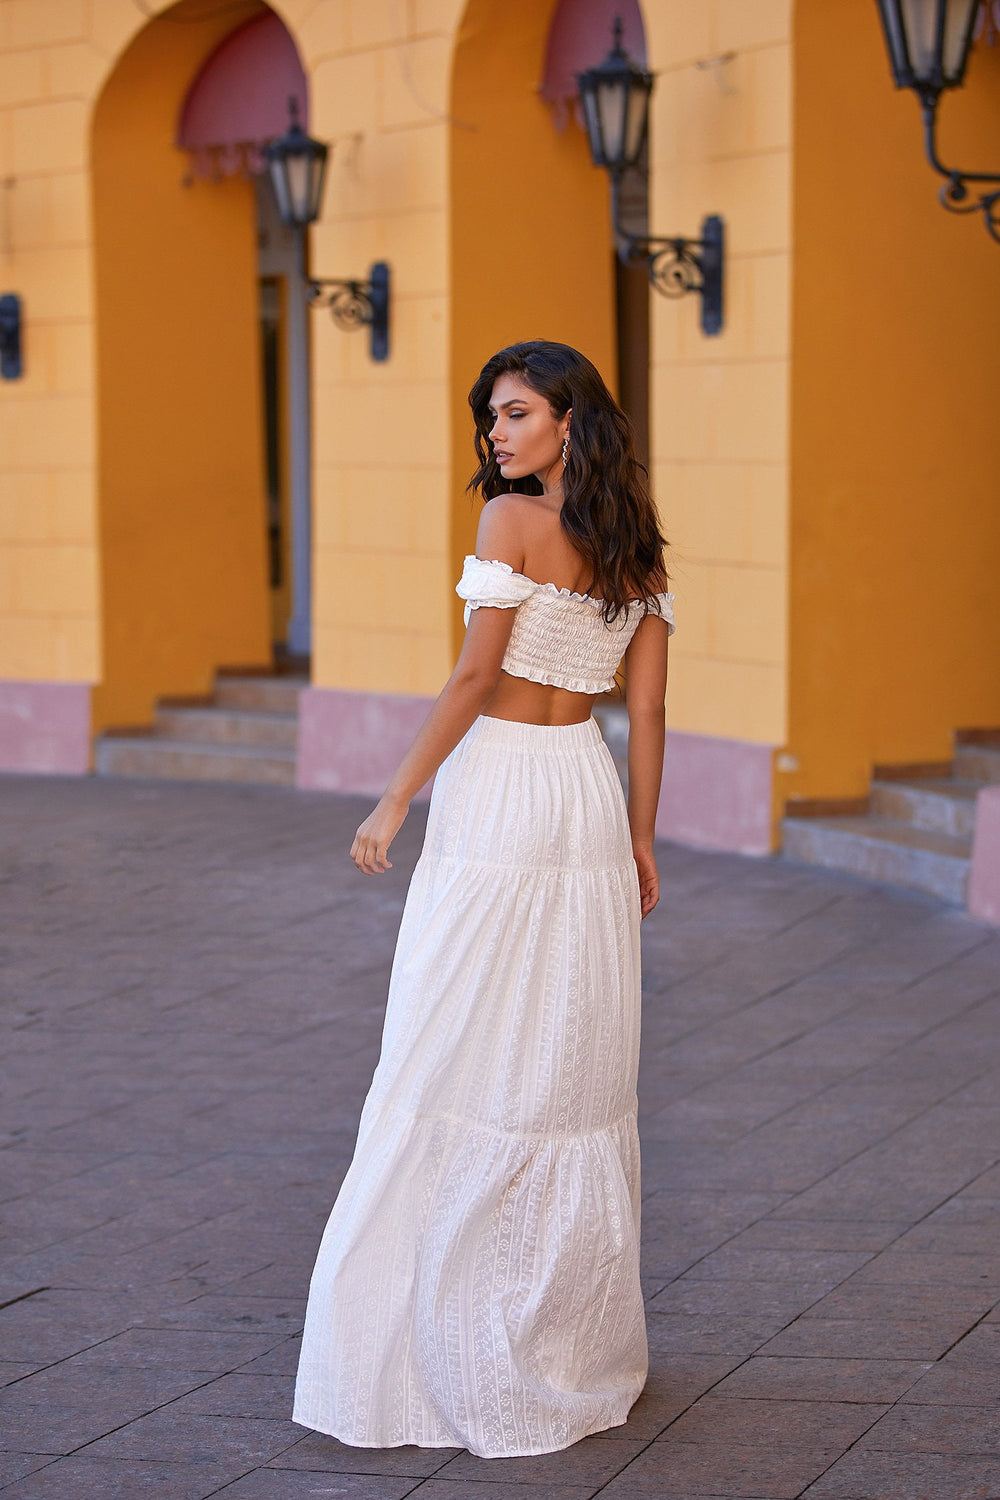 Alanis Set - White Lace Two Piece with Crop & High Waist Maxi Skirt